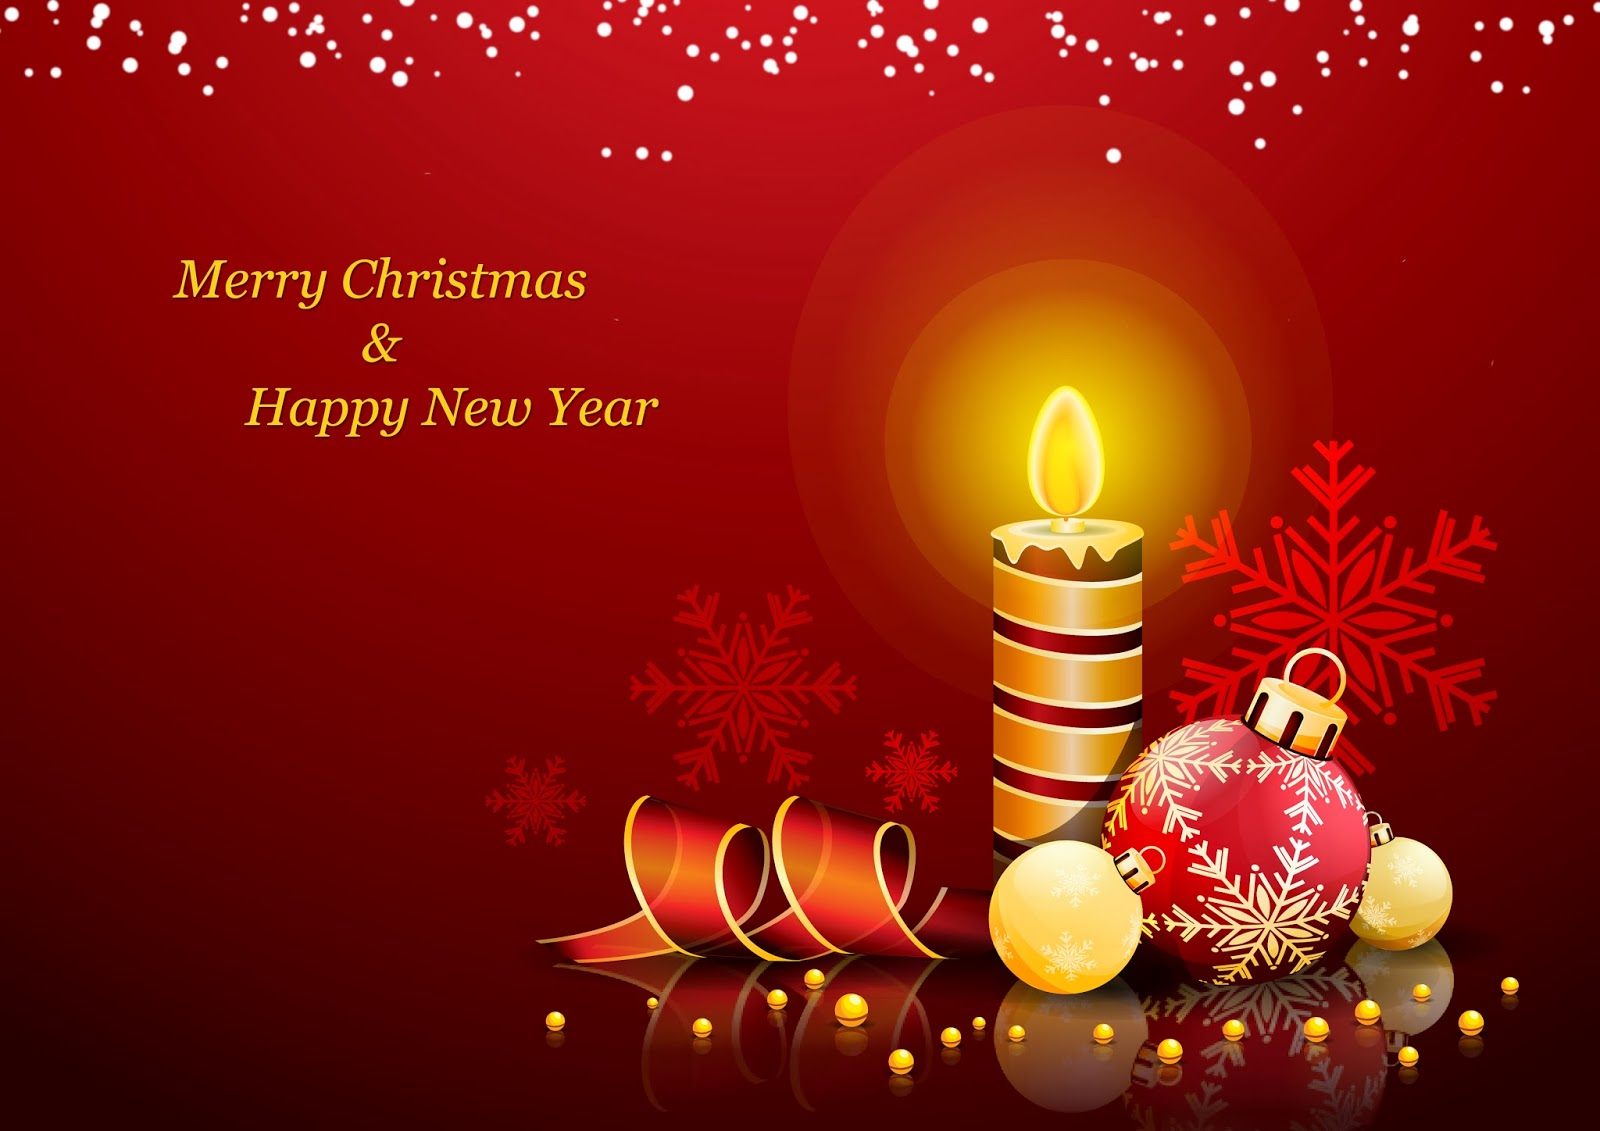 Merry Christmas and Happy New Year in many languages, kathmandu tour ...